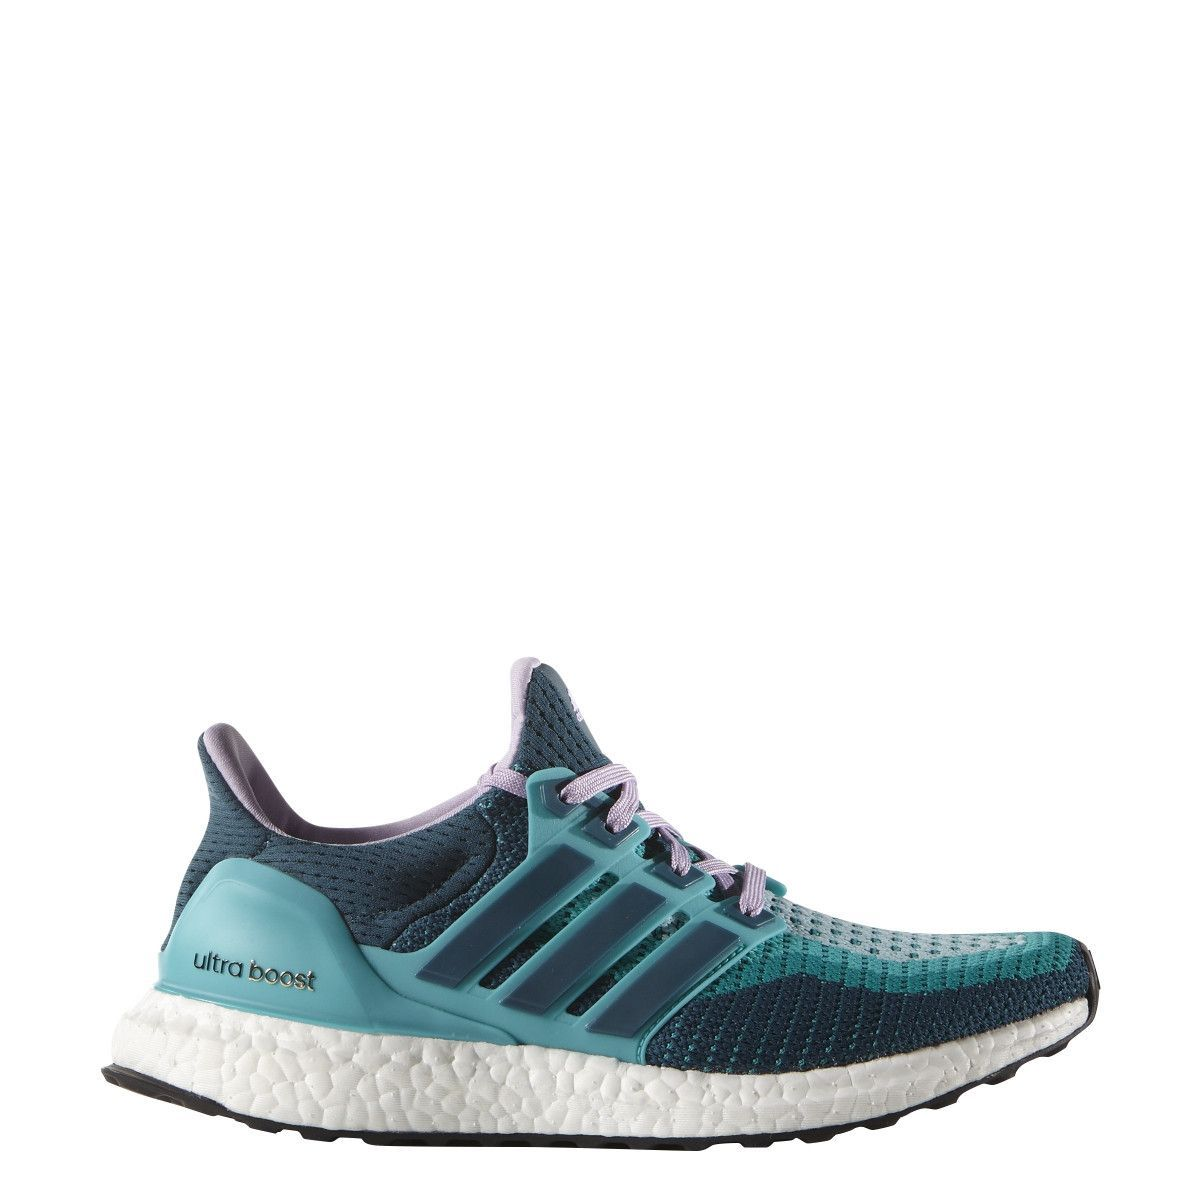 244bc409156 Adidas ultra boost womens sneakers